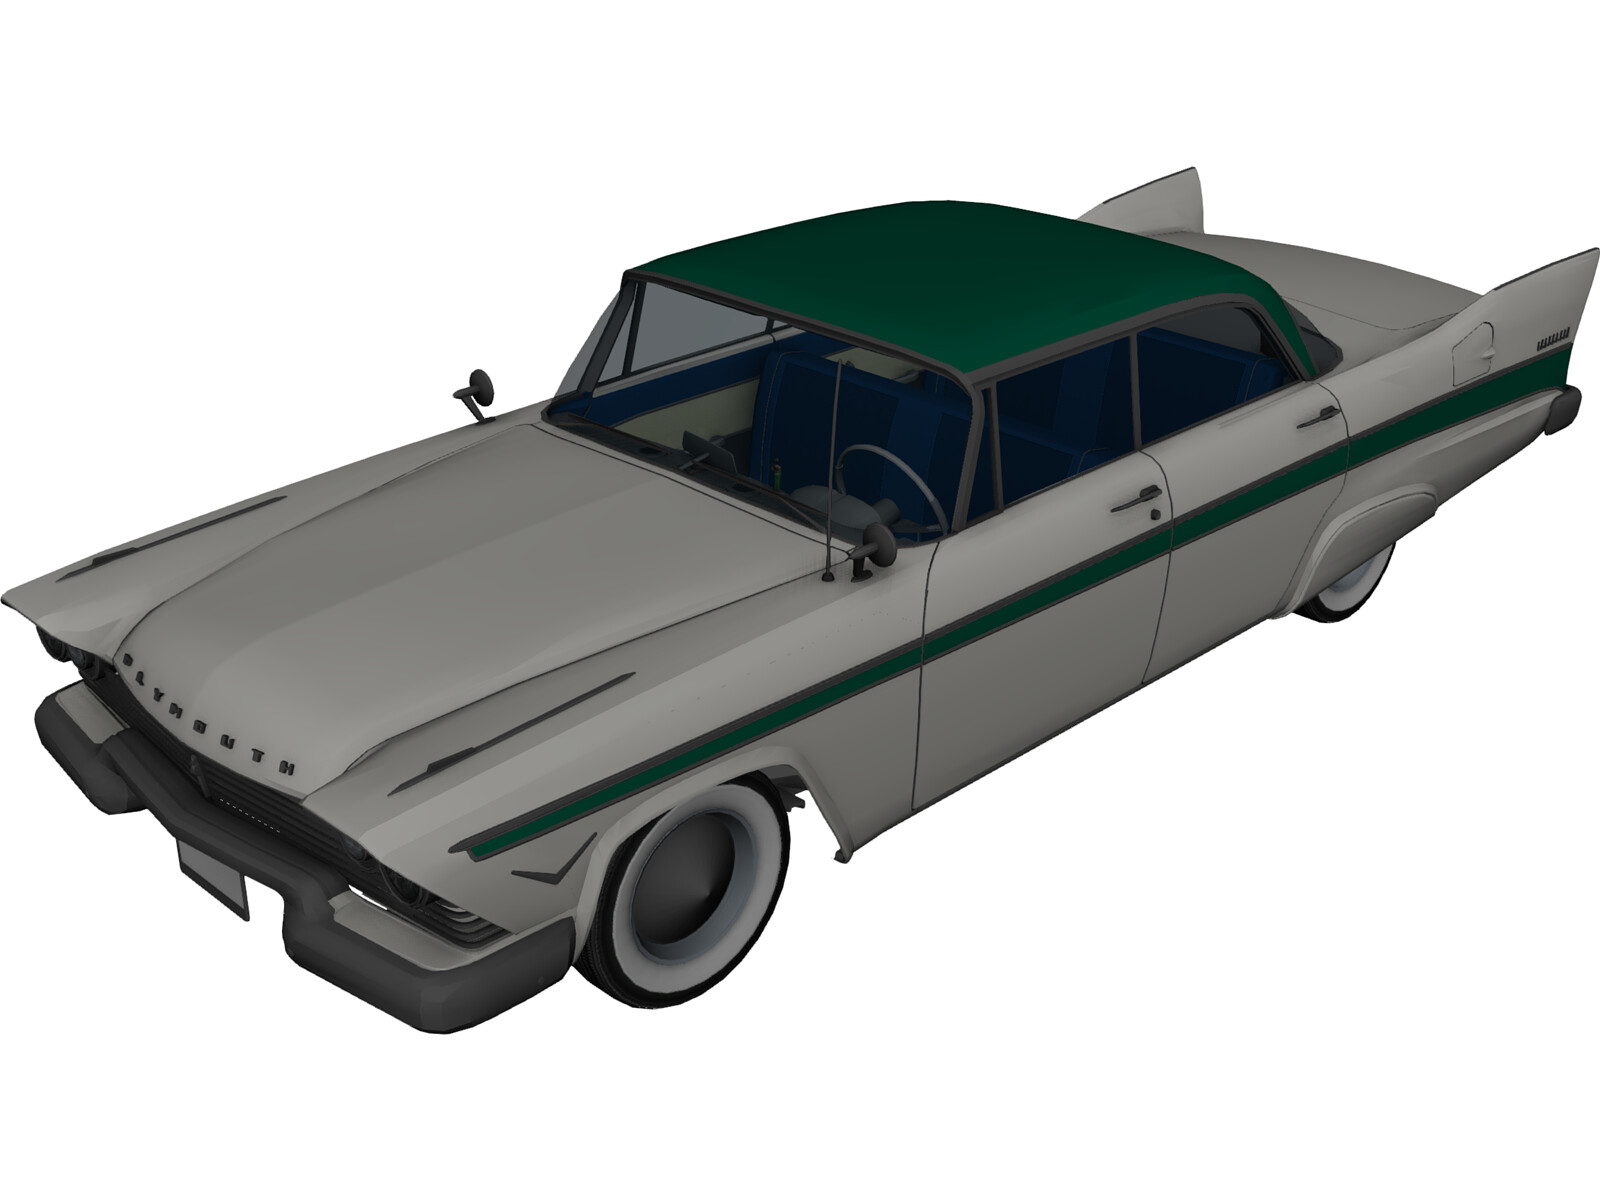 Plymouth Belvedere (1957)